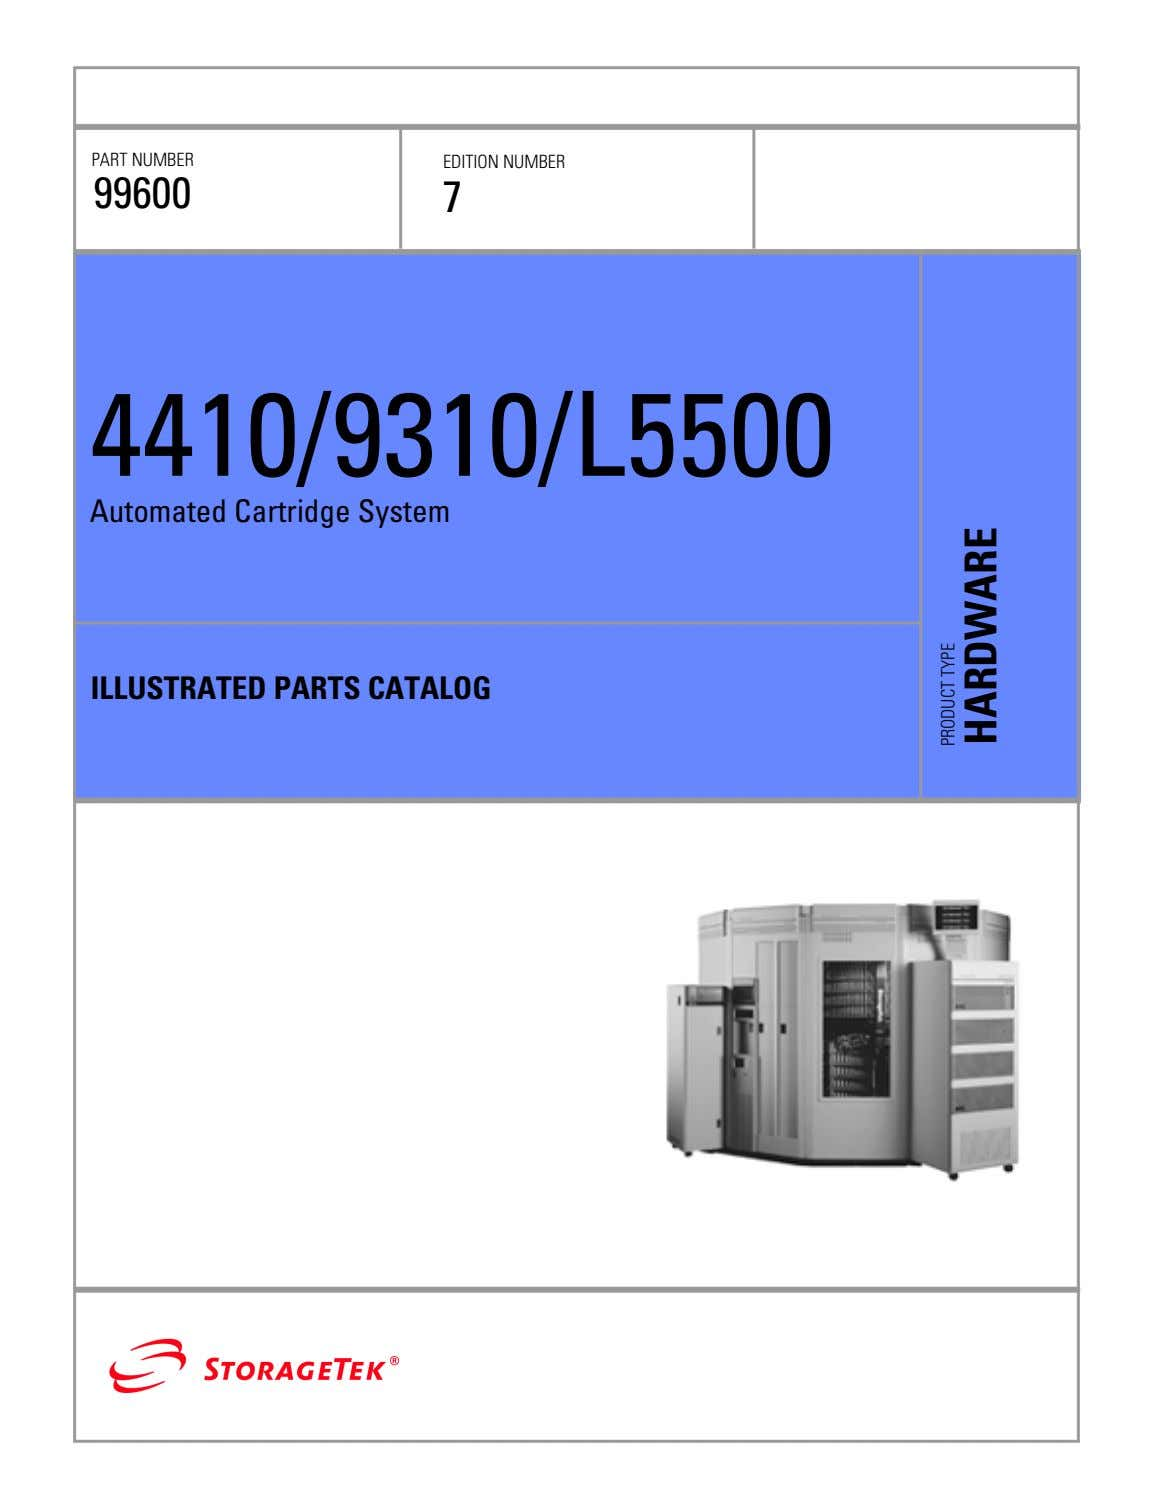 PART NUMBER EDITION NUMBER 99600 7 4410/9310/L5500 Automated Cartridge System ILLUSTRATED PARTS CATALOG PRODUCT TYPE HARDWARE